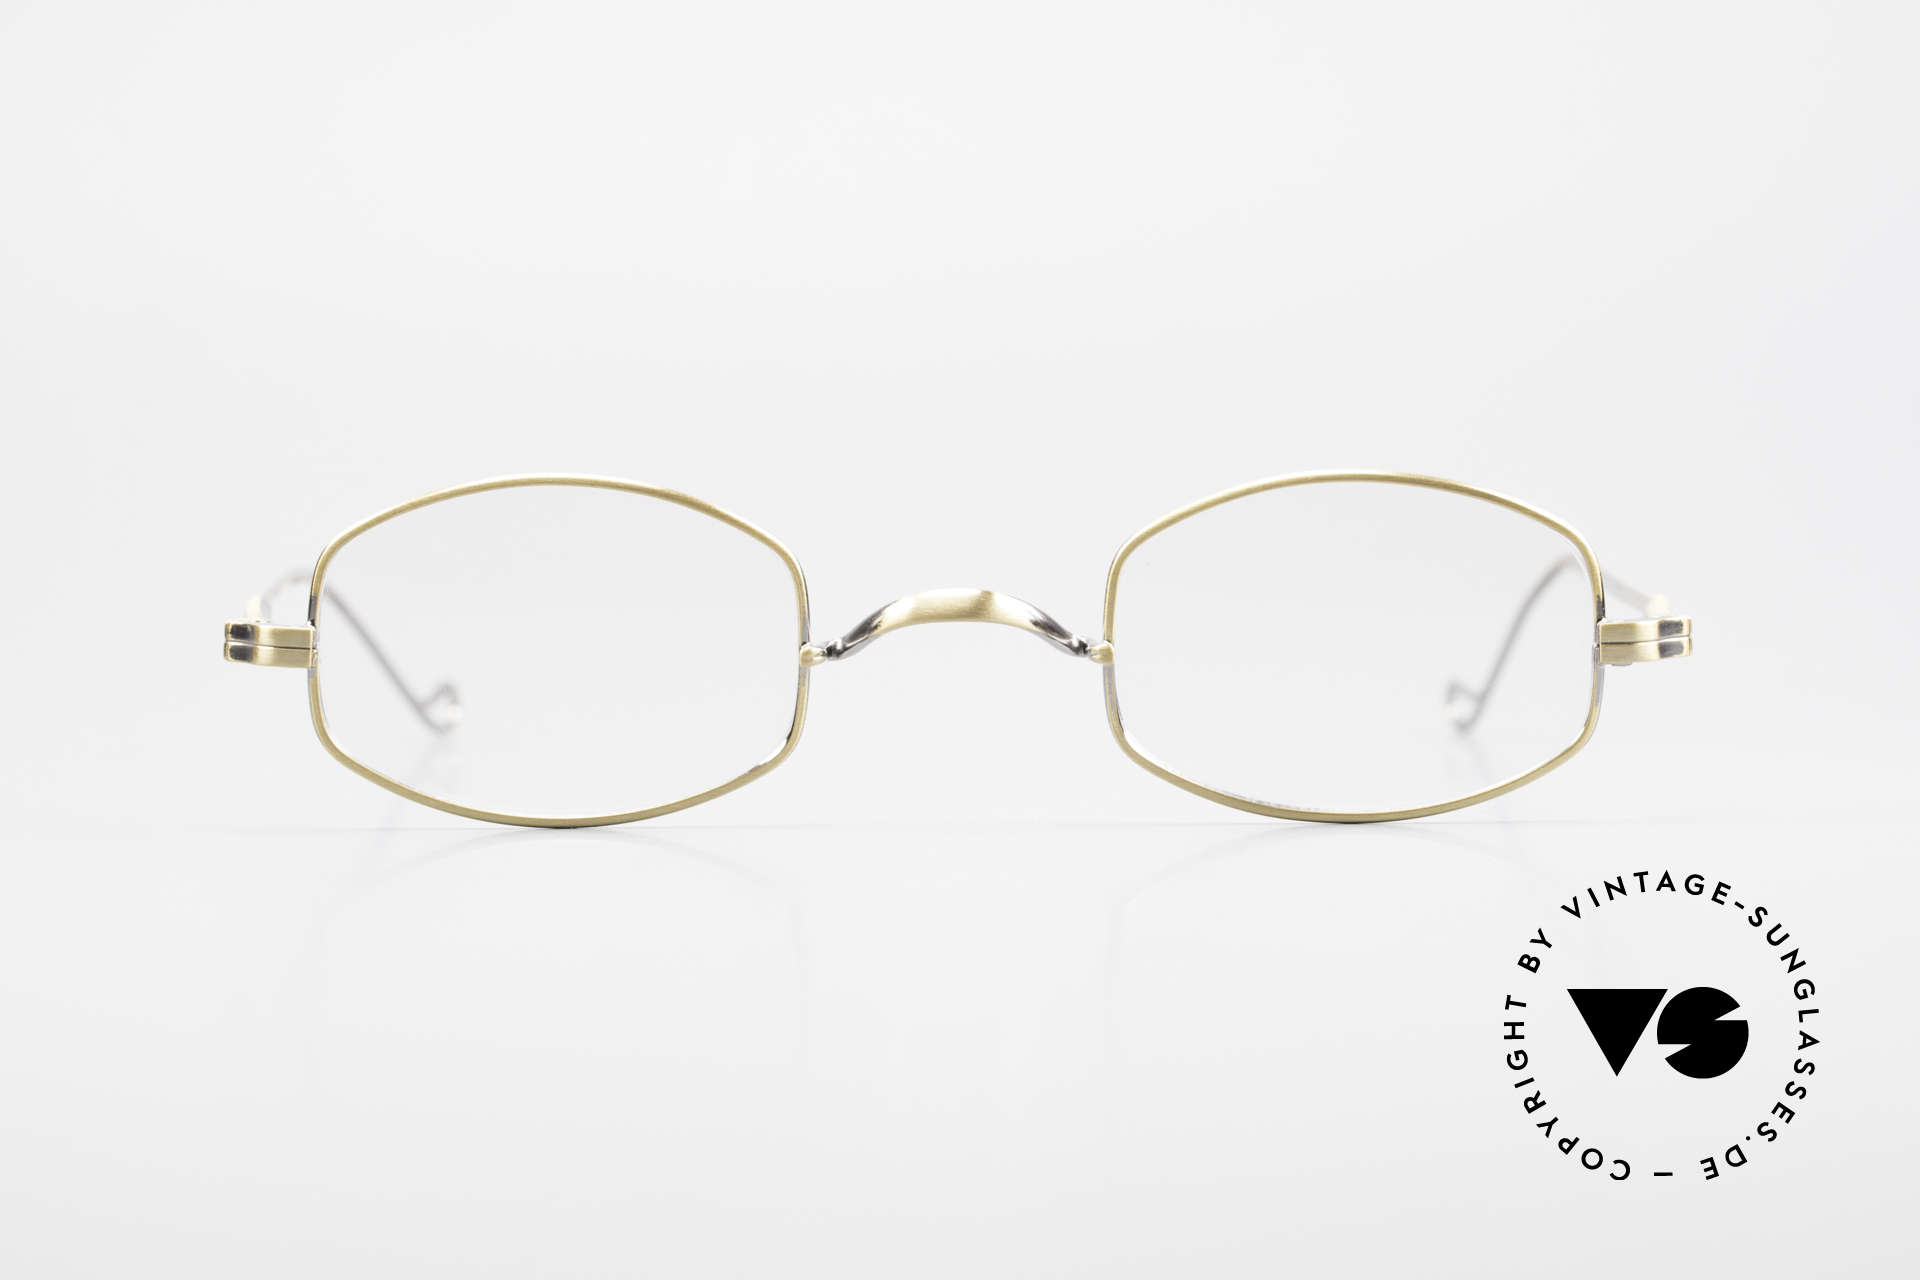 Lunor II 16 Lunor Eyeglasses Old Classic, LUNOR = a traditional German brand (handmade quality), Made for Men and Women